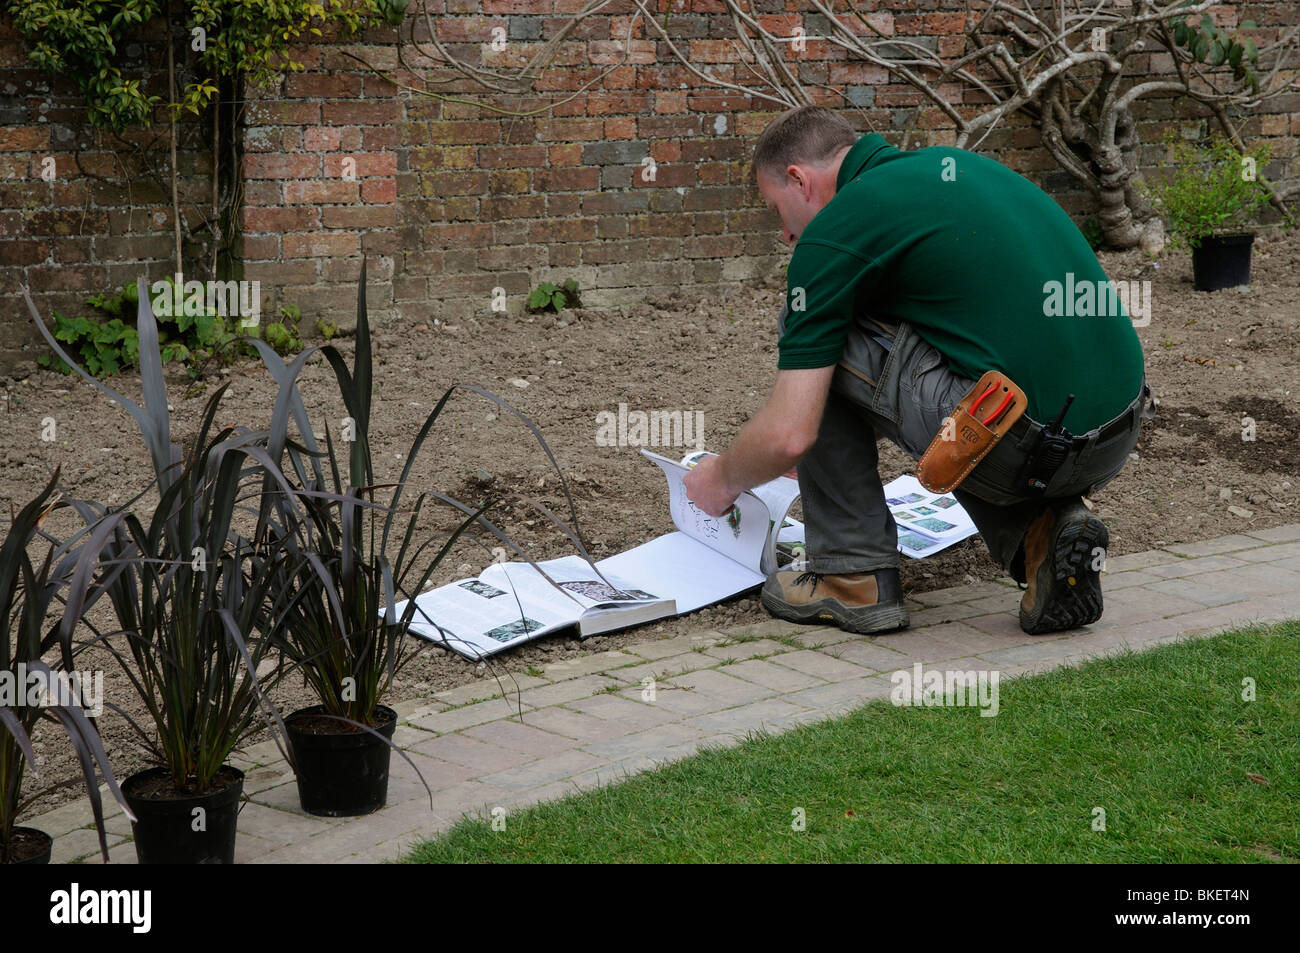 Gardener working in a flower garden planning and making reference to specialist gardening books before planting - Stock Image